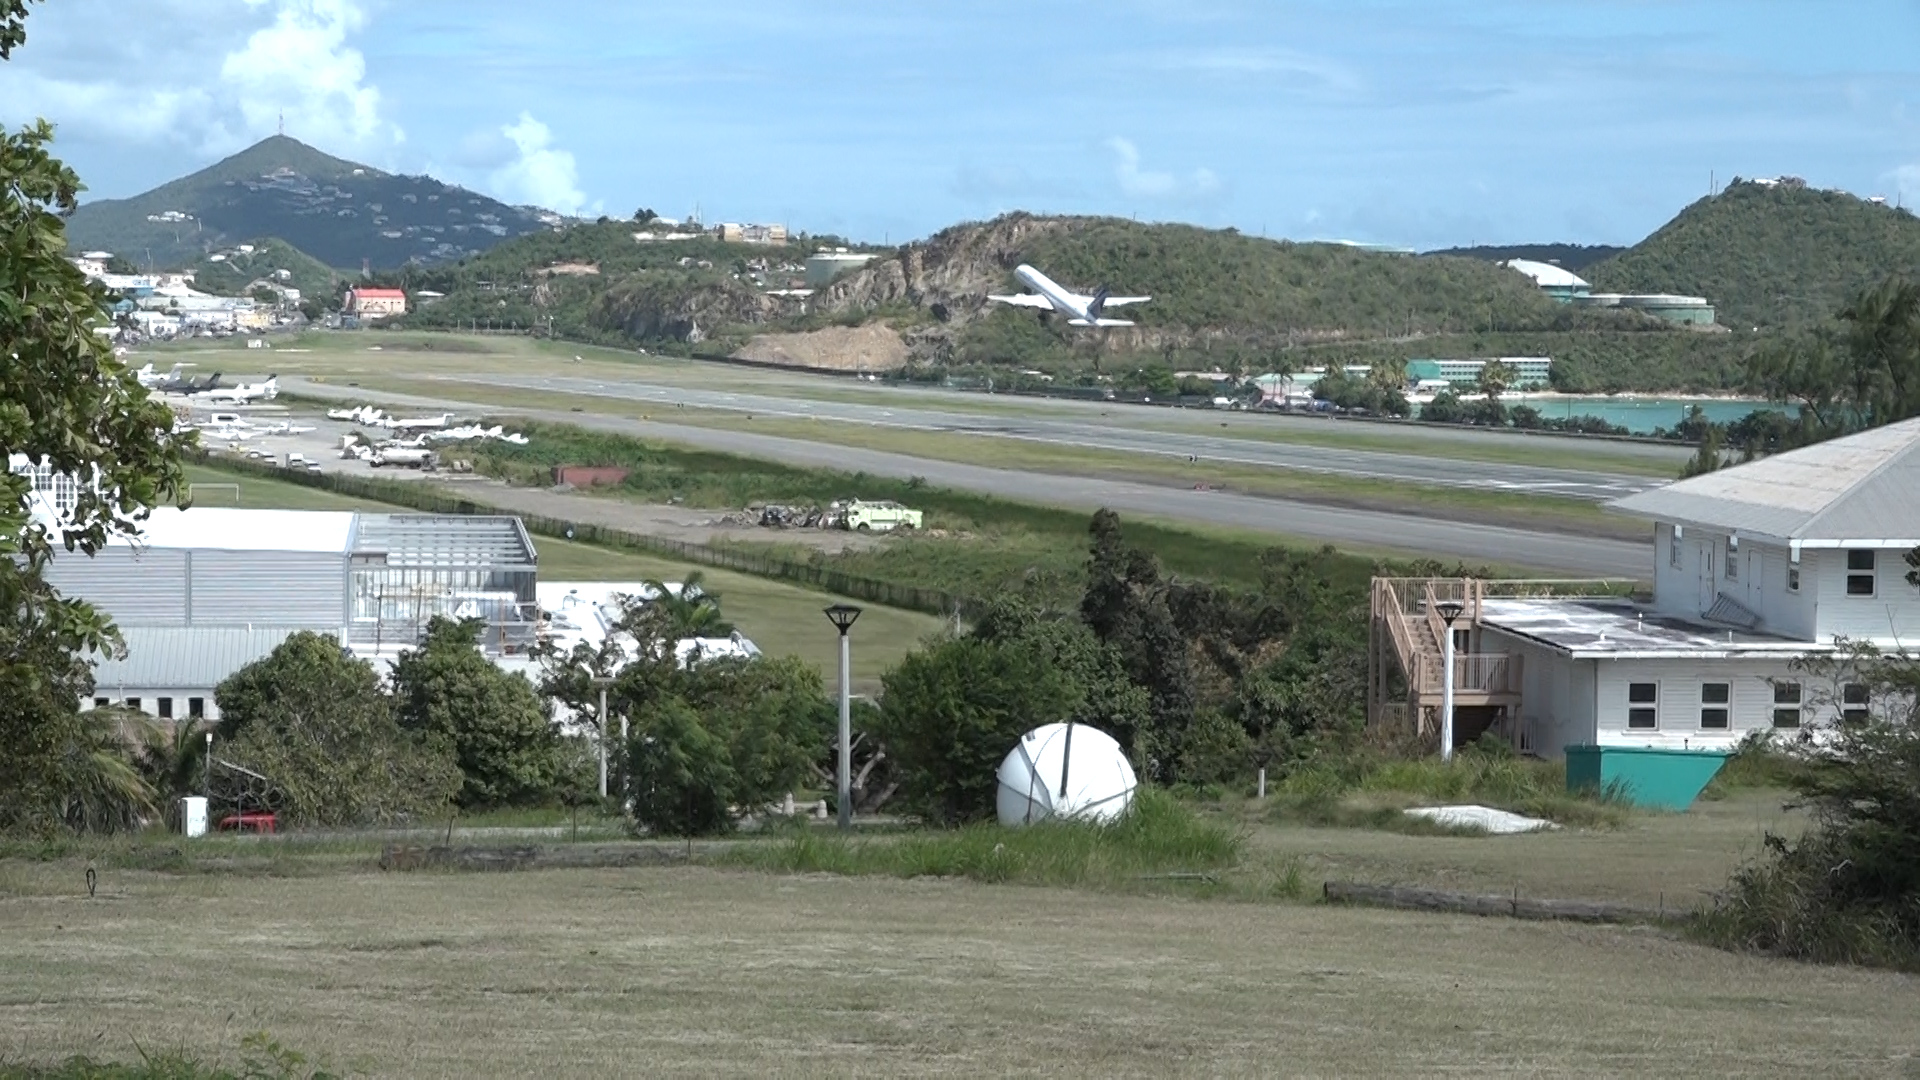 New Cases of COVID-19 Reported & Airline Suspends Flights into Territory